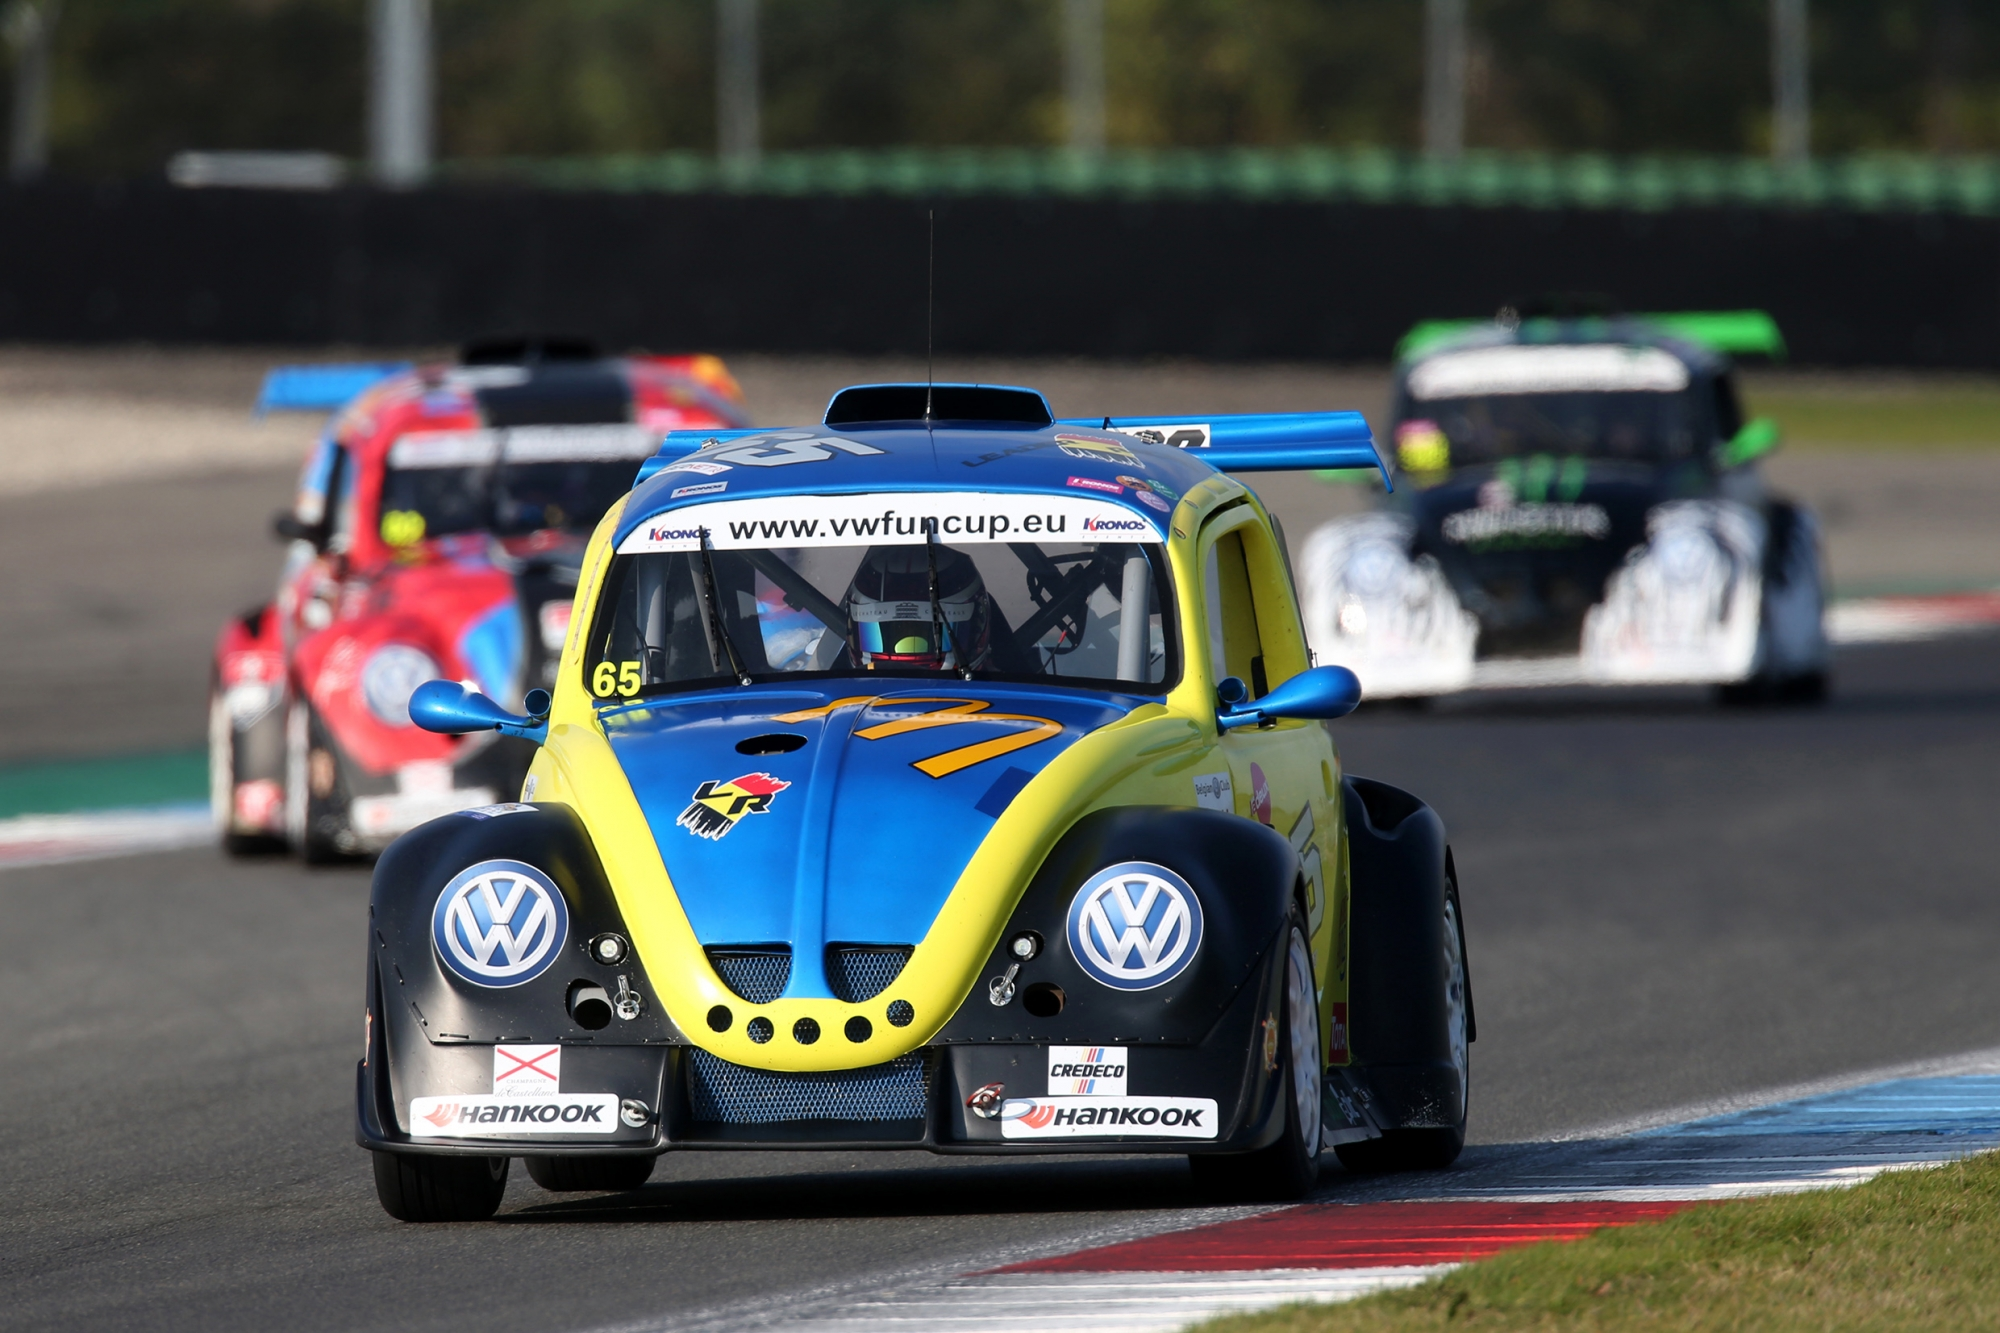 image 1 - Leader Racing en Monster by Milo pingpongen naar pole positie in Assen